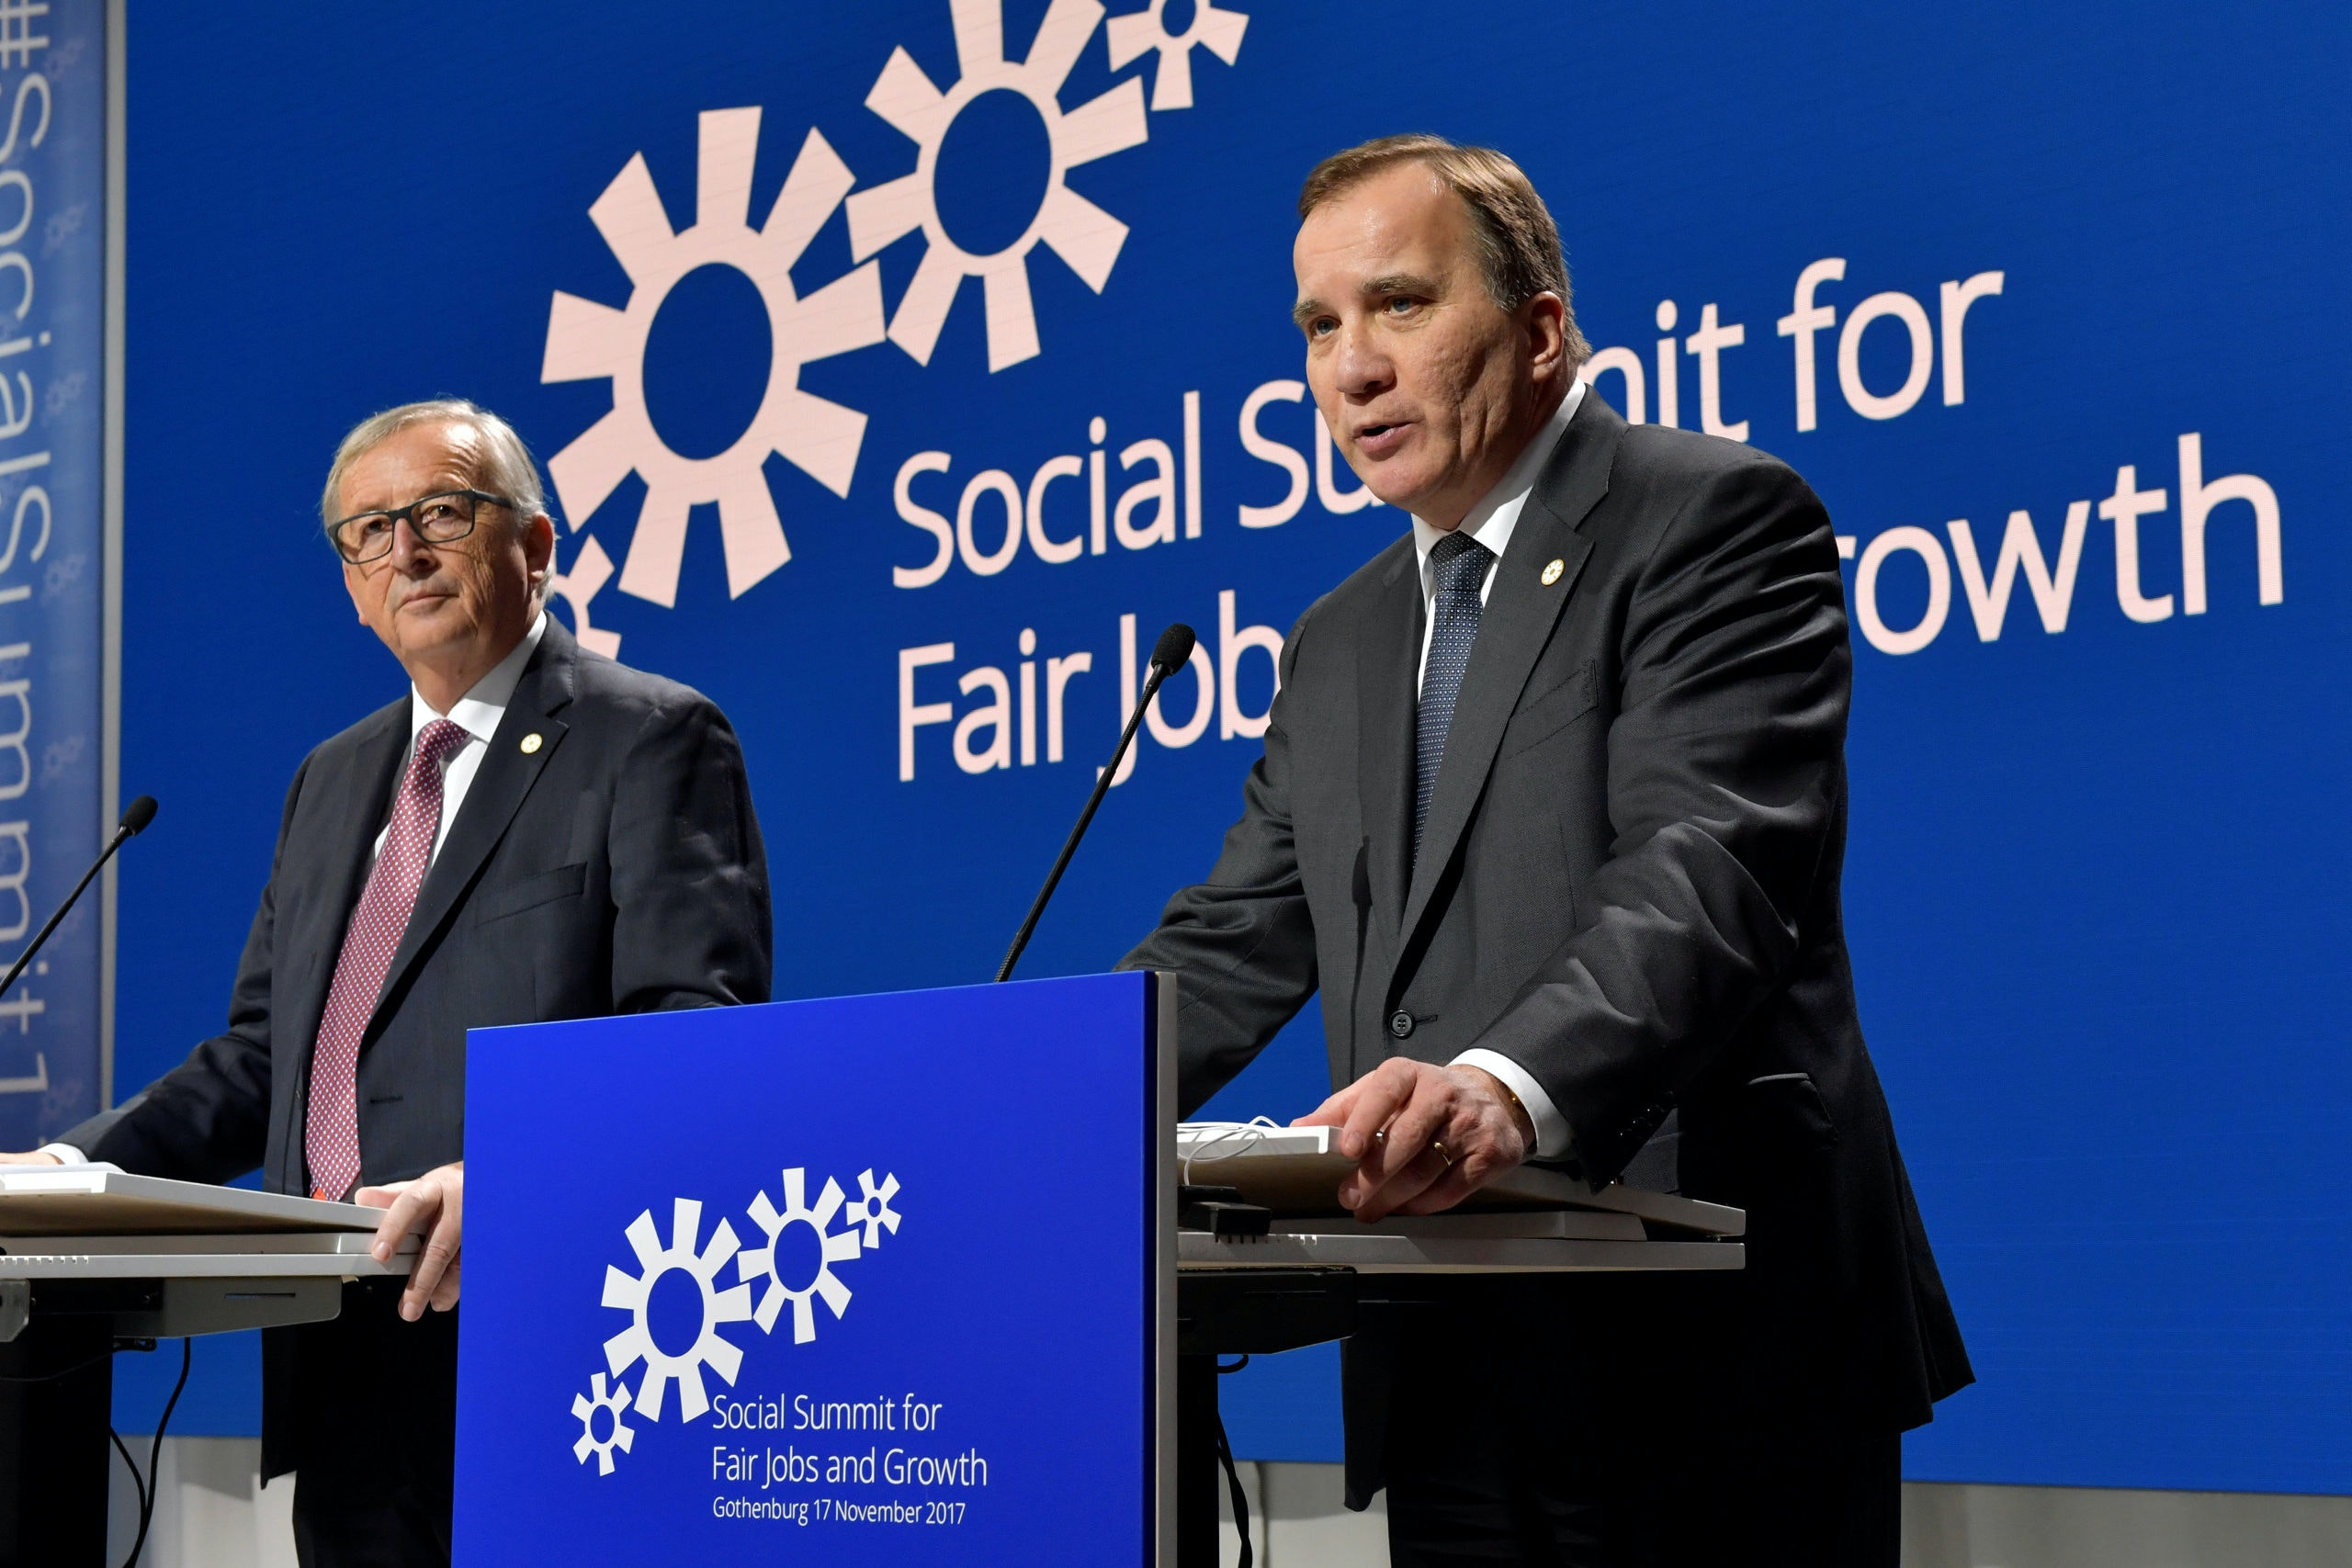 European Commission President Jean-Claude Juncker and Swedish Prime Minister Stefan Lofven during the EU Social Summit for Fair Jobs and Growth in Gothenburg, Sweden, November 17, 2017. TT News Agency/Jonas Ekstromer/via REUTERS ATTENTION EDITORS - THIS IMAGE WAS PROVIDED BY A THIRD PARTY. SWEDEN OUT. NO COMMERCIAL OR EDITORIAL SALES IN SWEDEN.